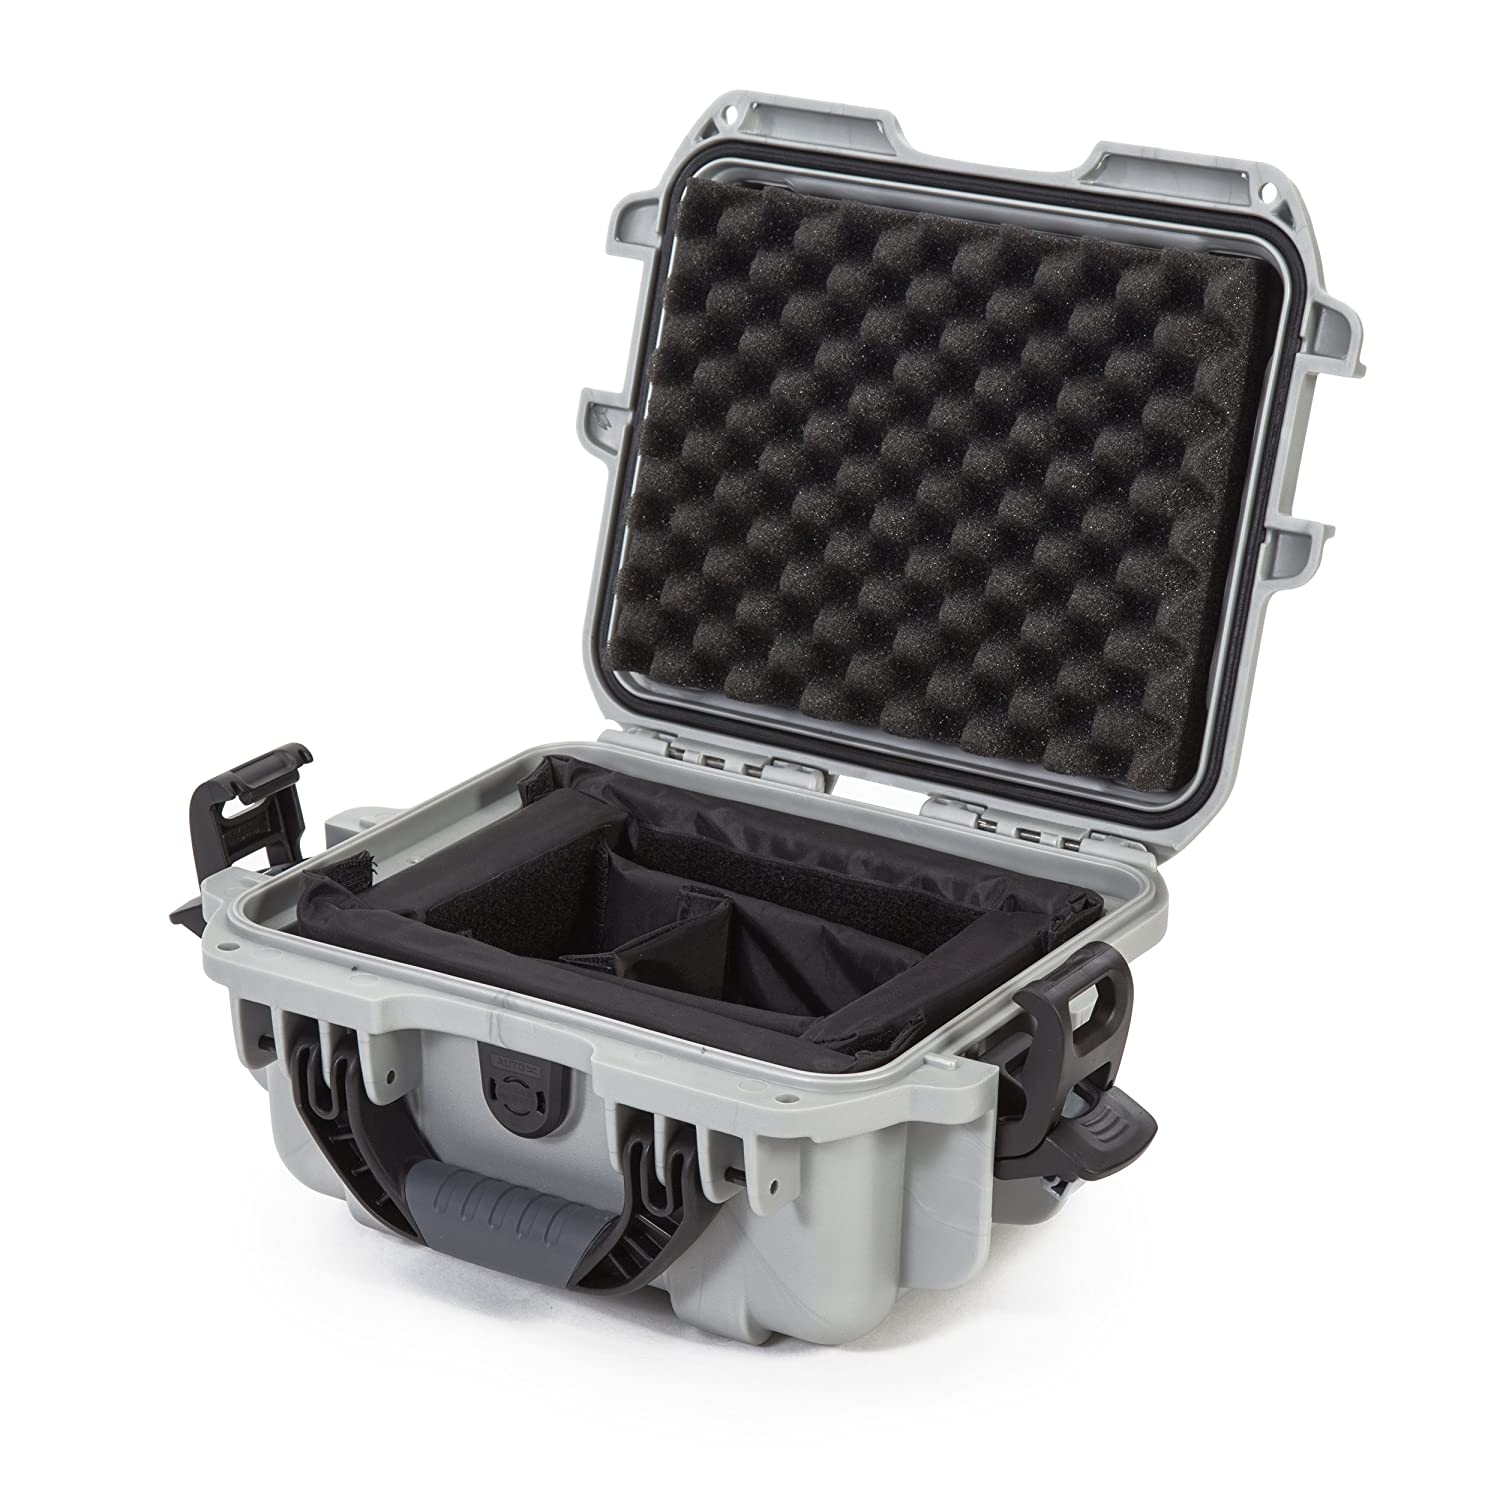 Nanuk 905 Waterproof Hard Case with Padded Dividers - Silver Plasticase Inc 905-2005